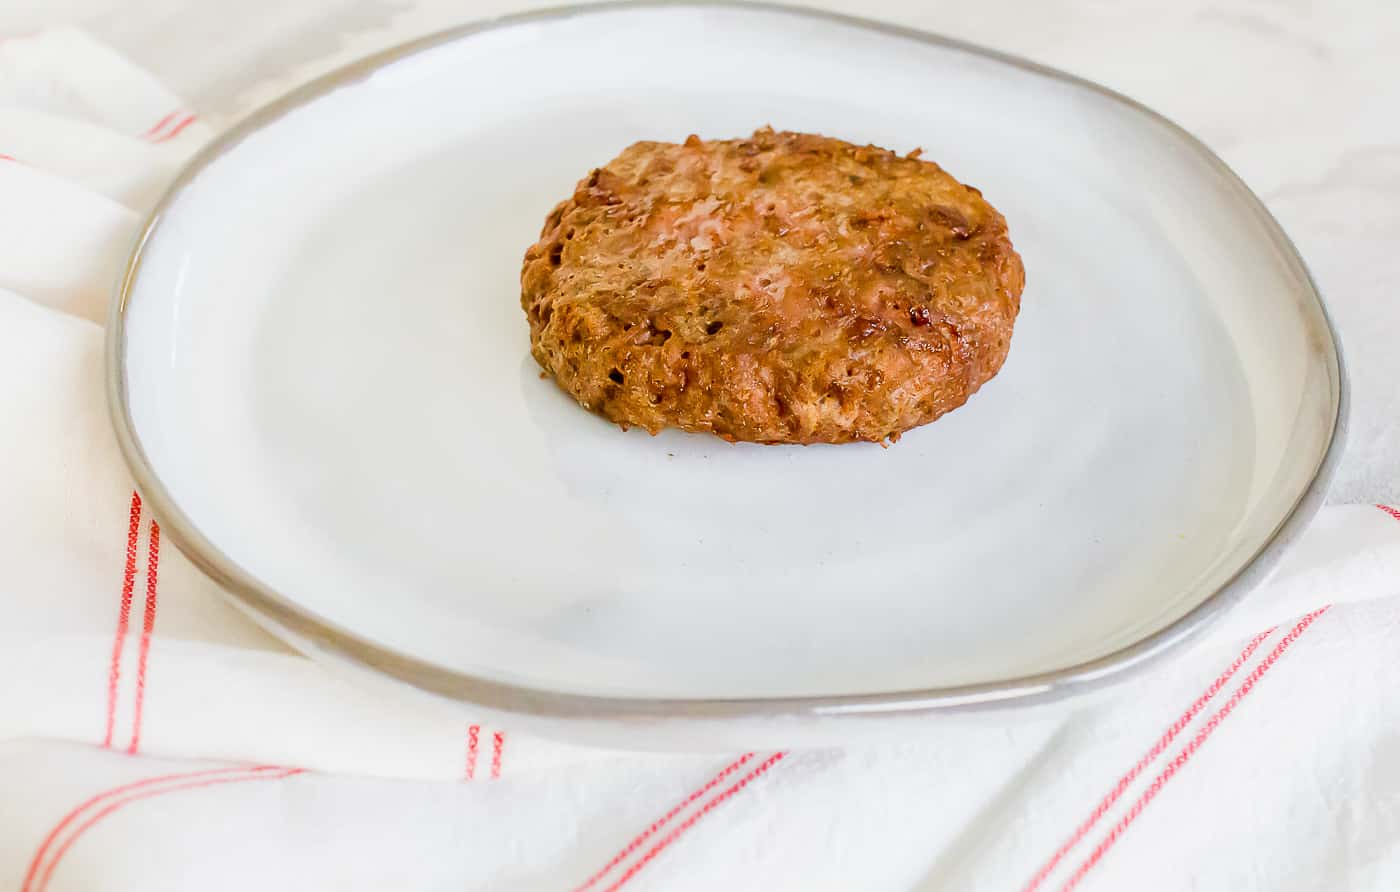 a cooked round hamburger patty on a round white plate